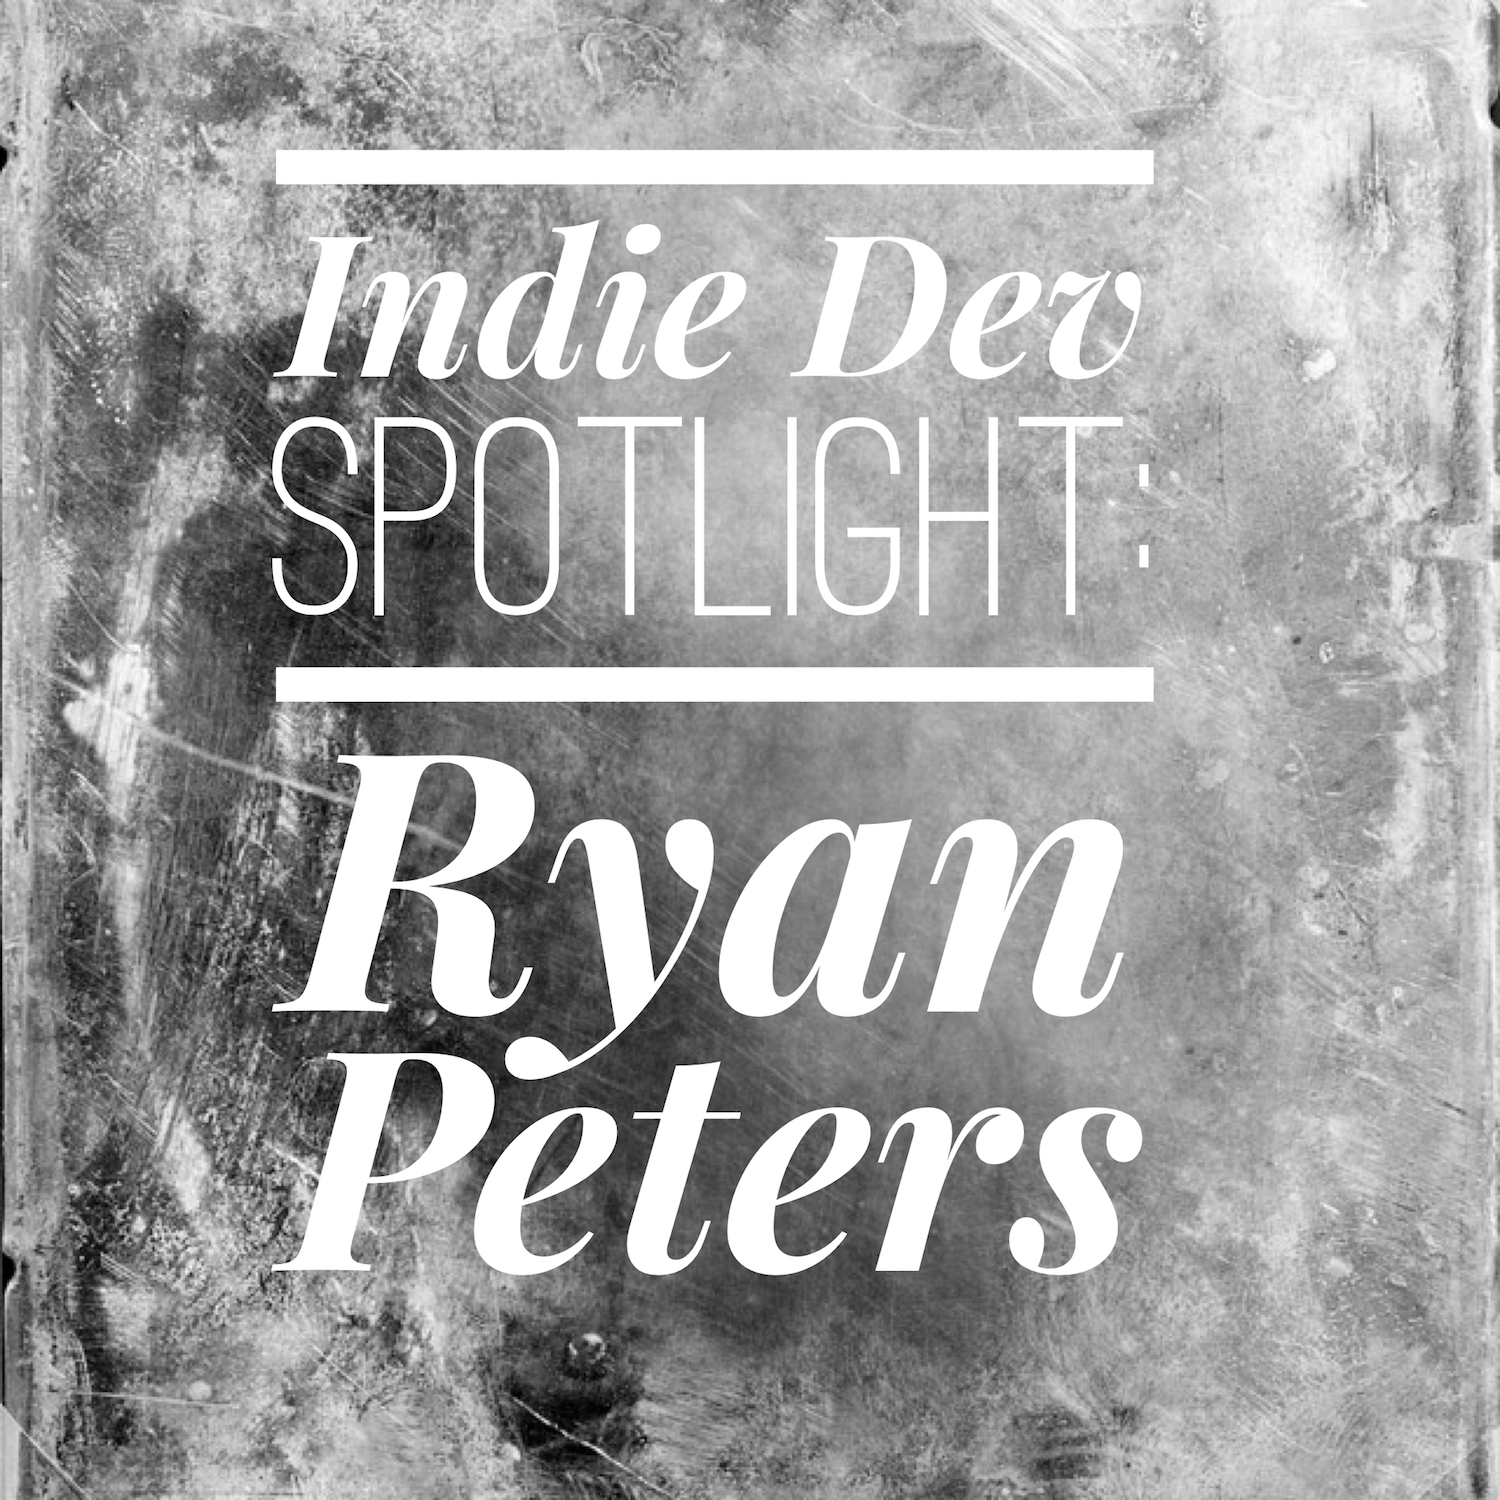 Indie Dev Spotlight: On Task's Ryan Peters